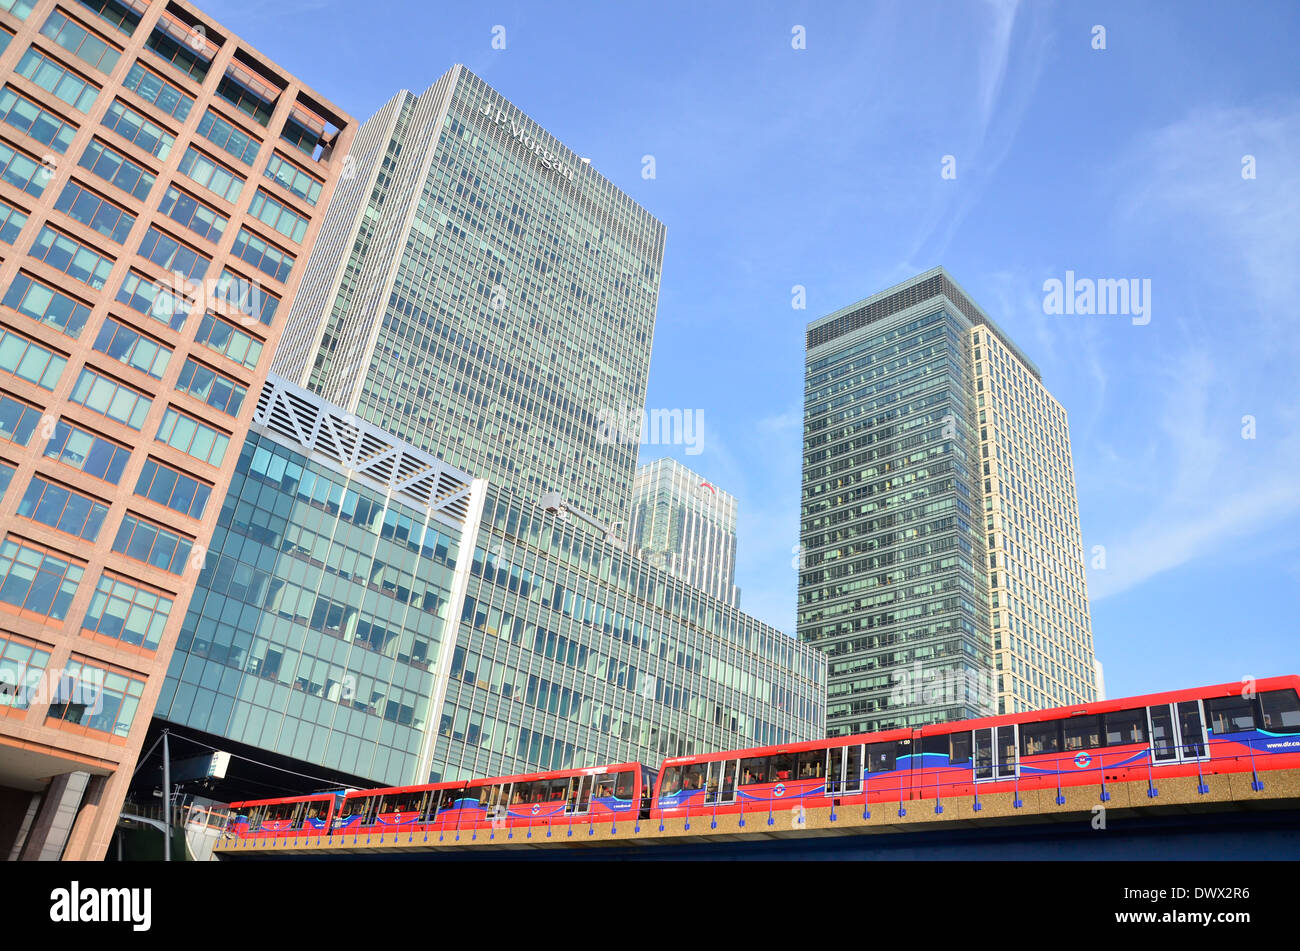 Office Blocks and the Docklands Light Railway train in Canary Wharf, Docklands, East London, England, UK - Stock Image